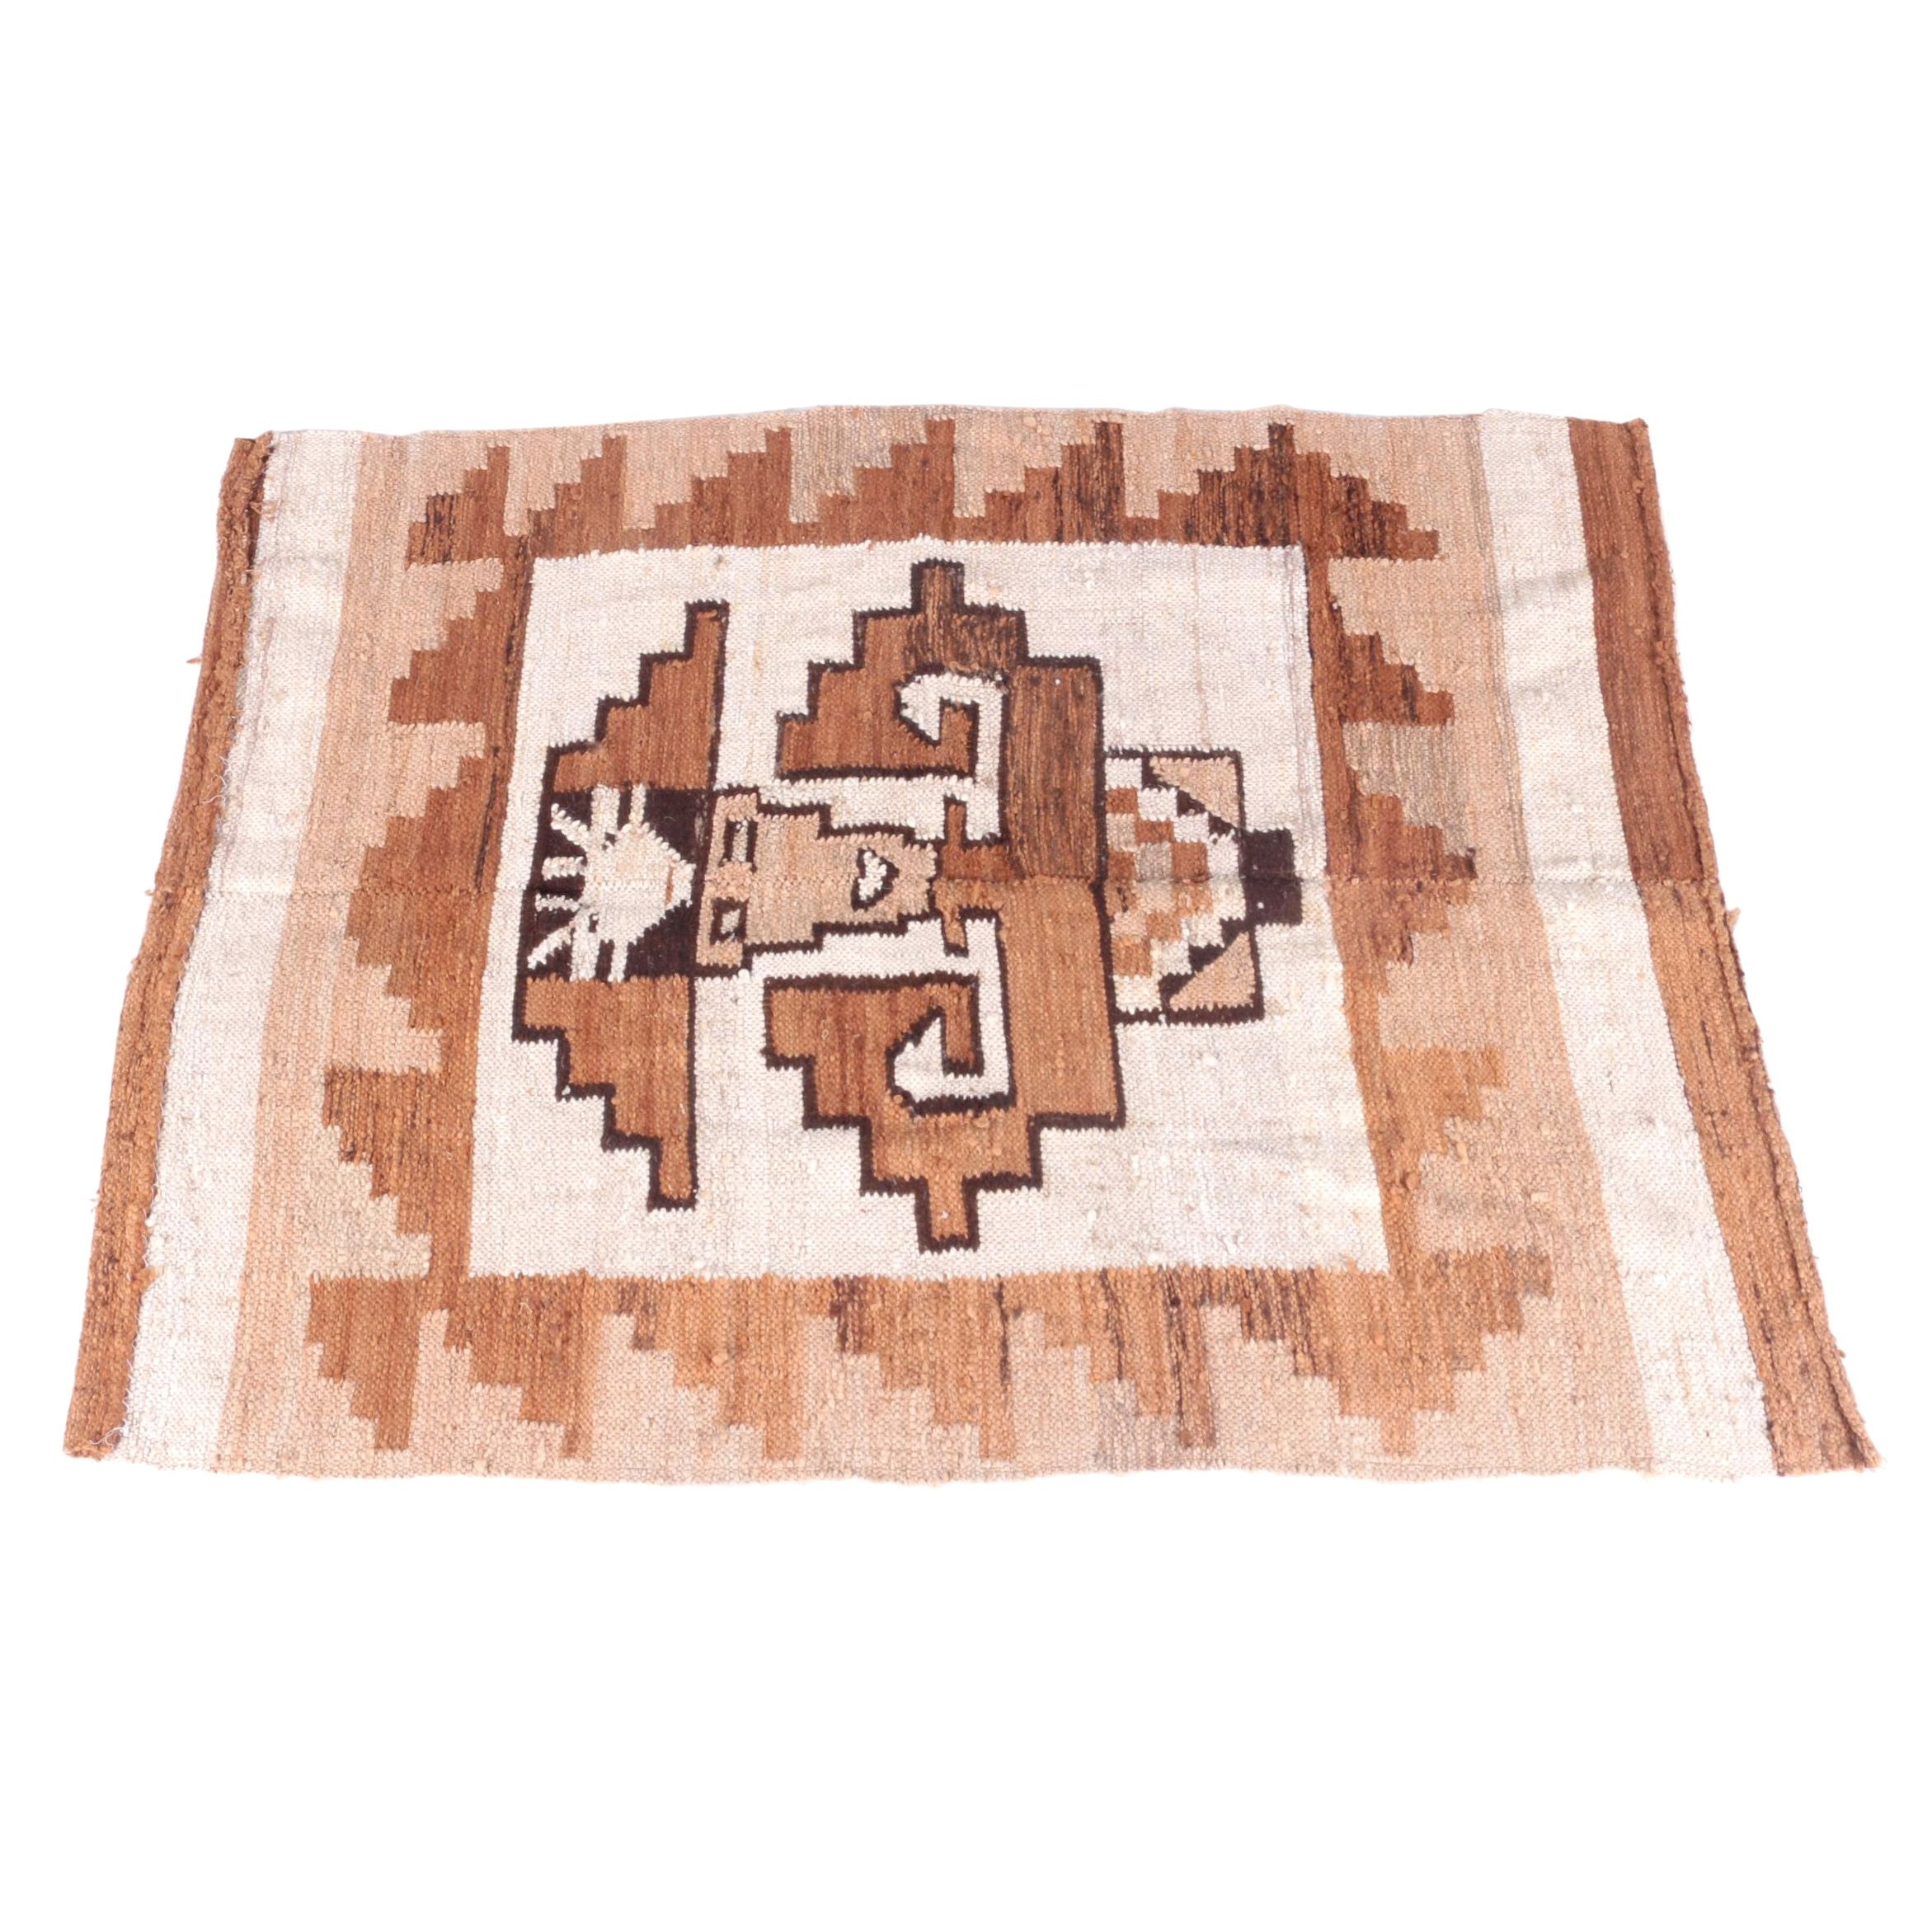 Handwoven Peruvian Wool Accent Rug